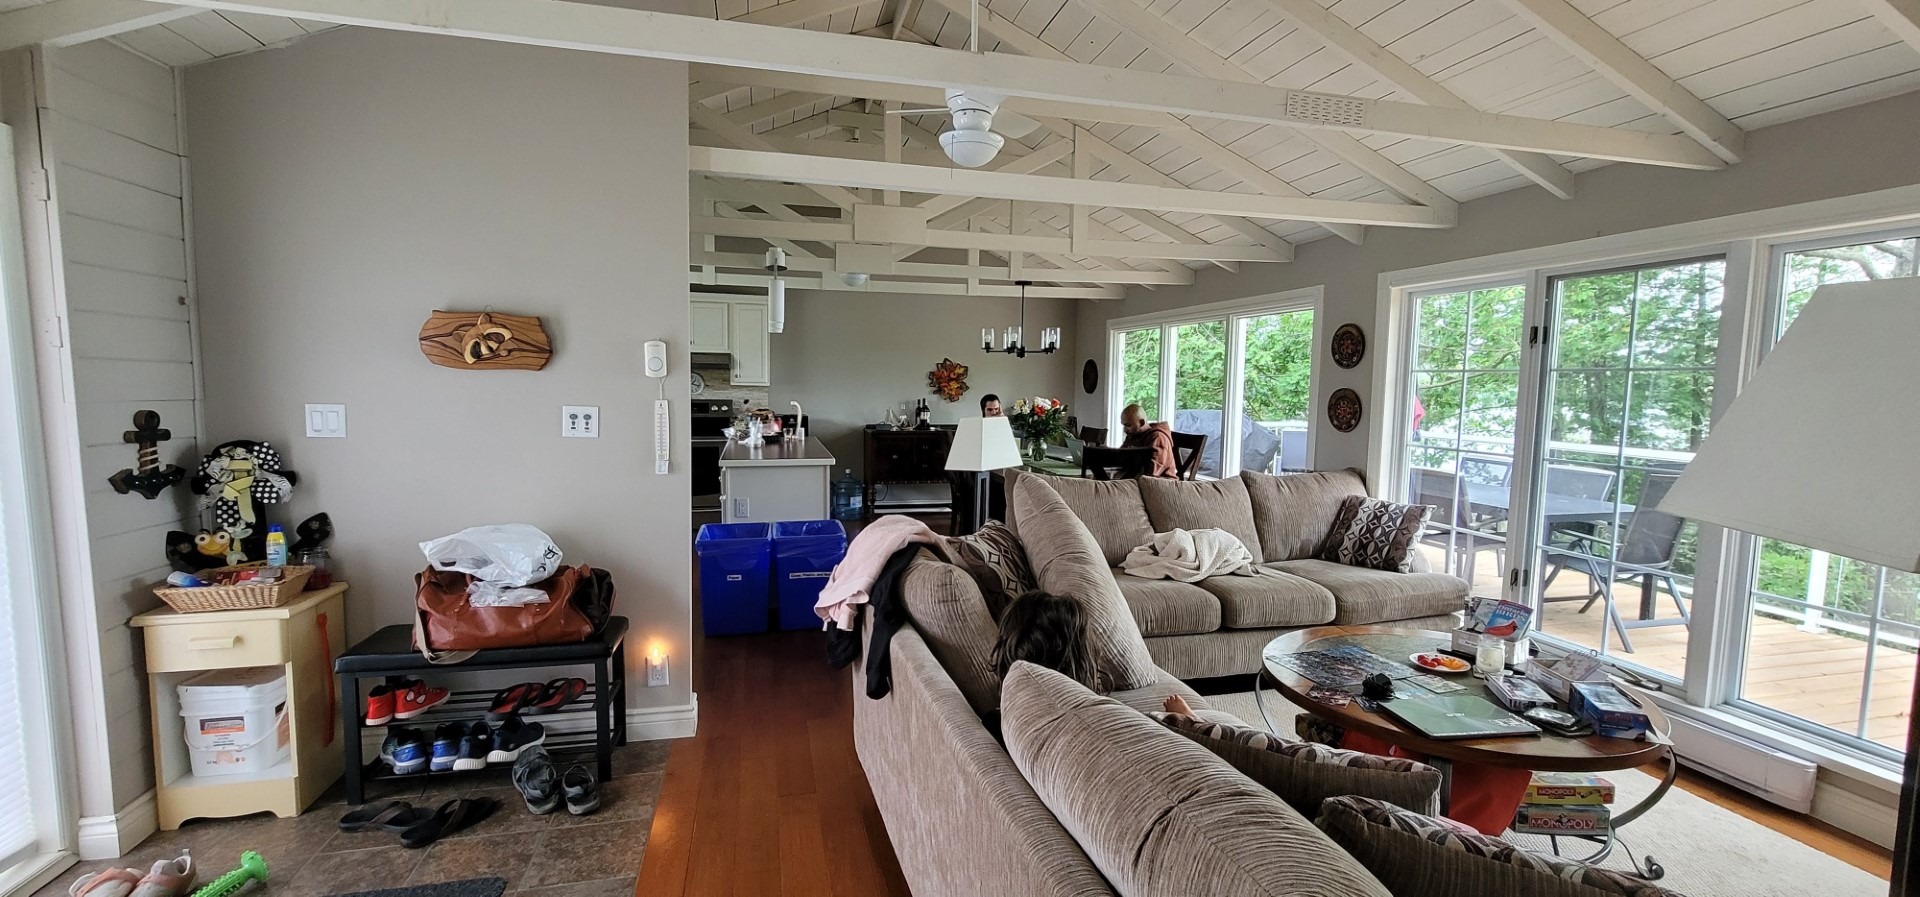 living room with couch and high ceilings